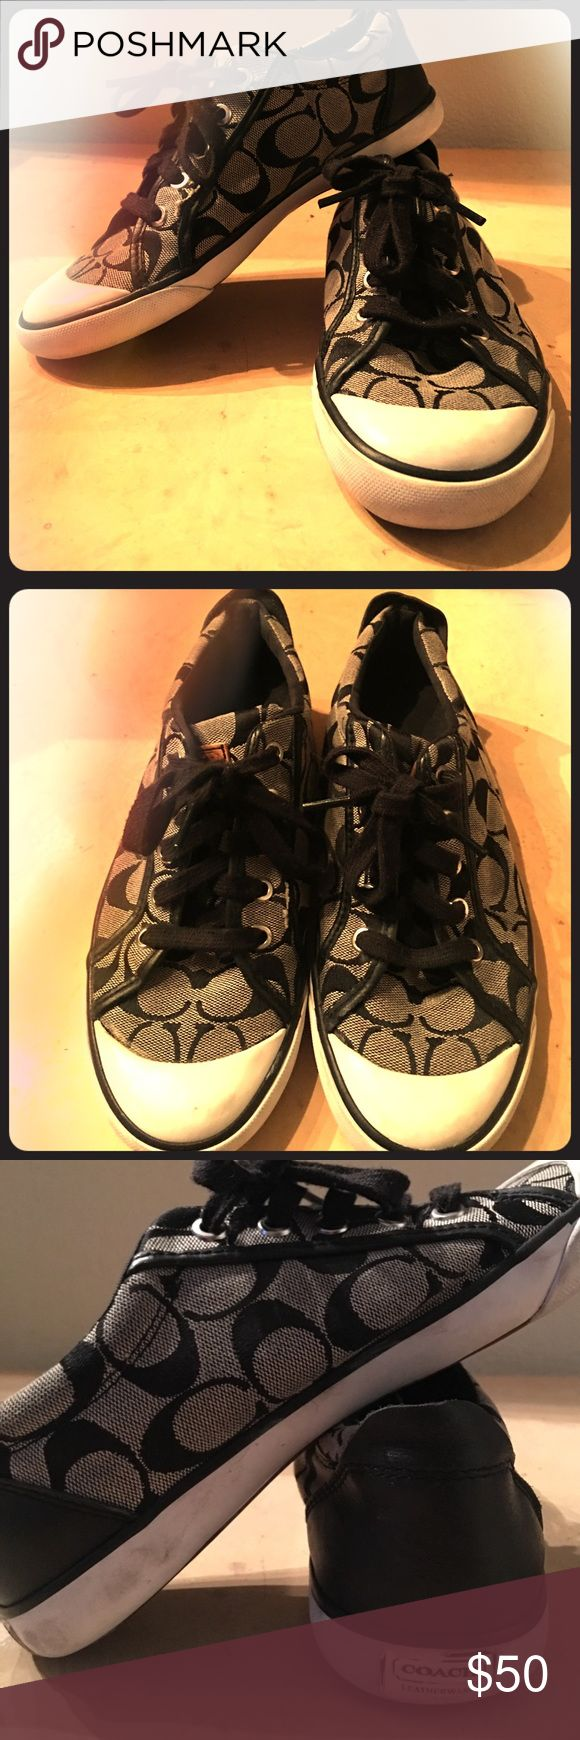 coach tennis shoes Lightly worn coach tennis shoes! extremely comfortable , cute, low cut,  go with just about anything ! From jeans and short to skirt and dresses Coach Shoes Sneakers